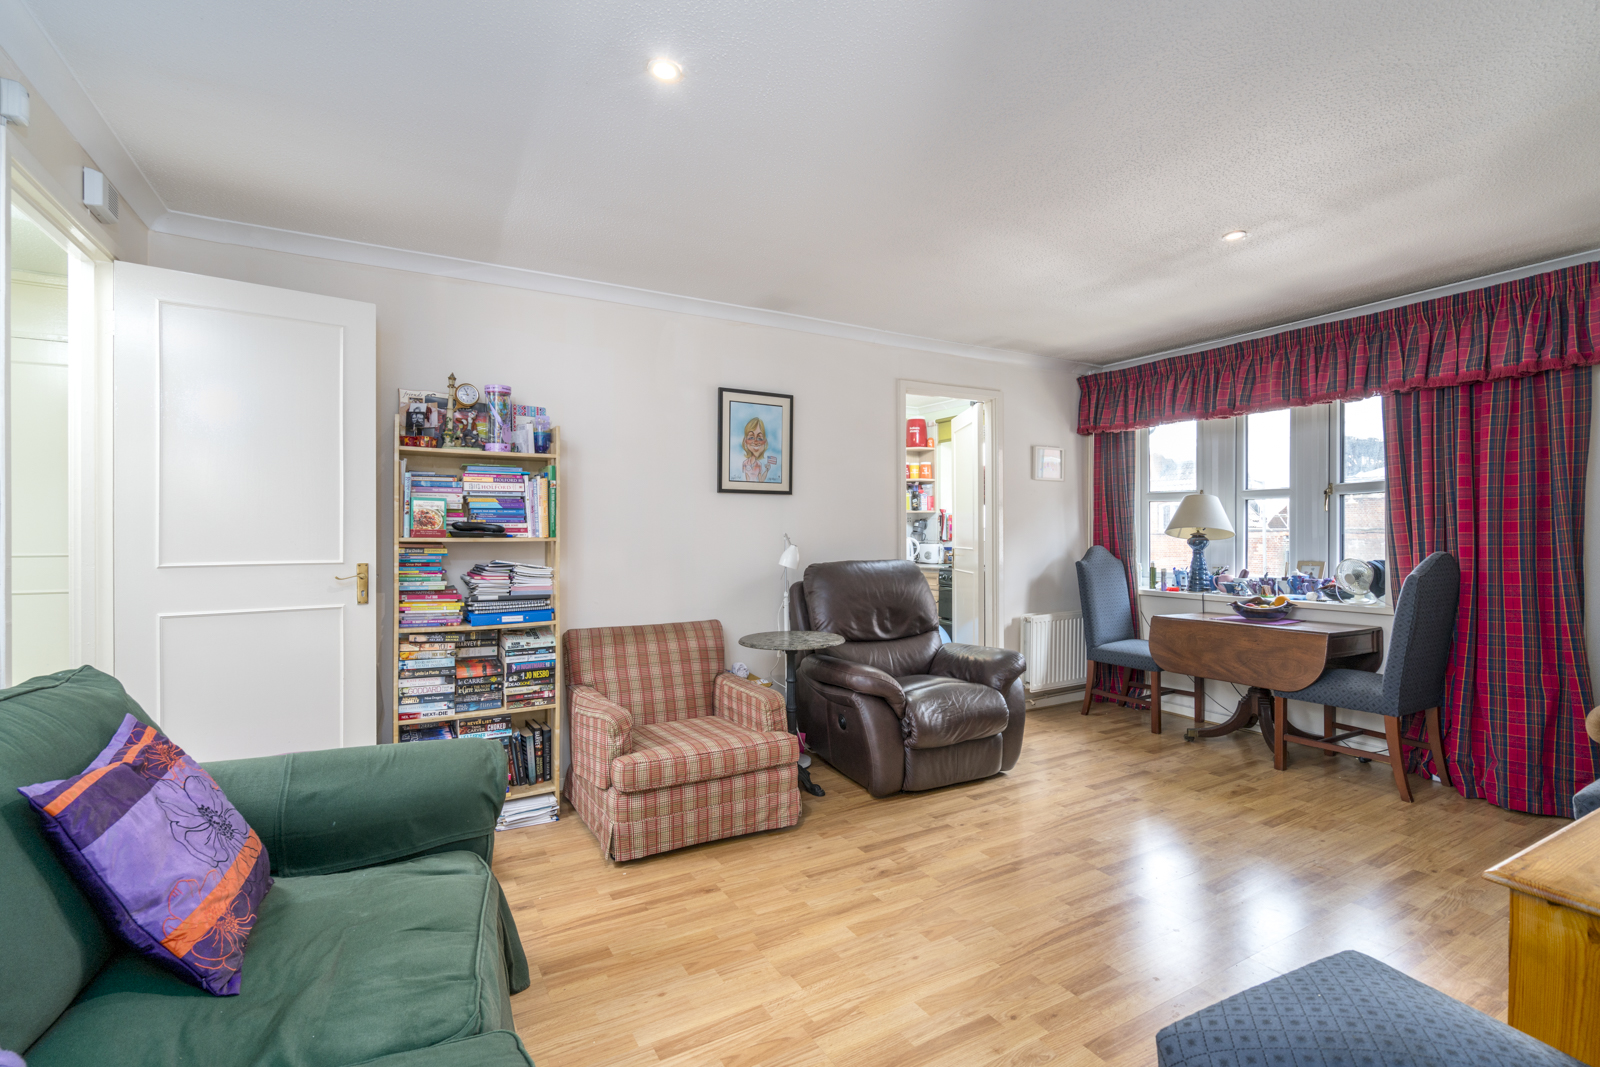 bedroom furnished flat to rent on theatre street london sw11 by